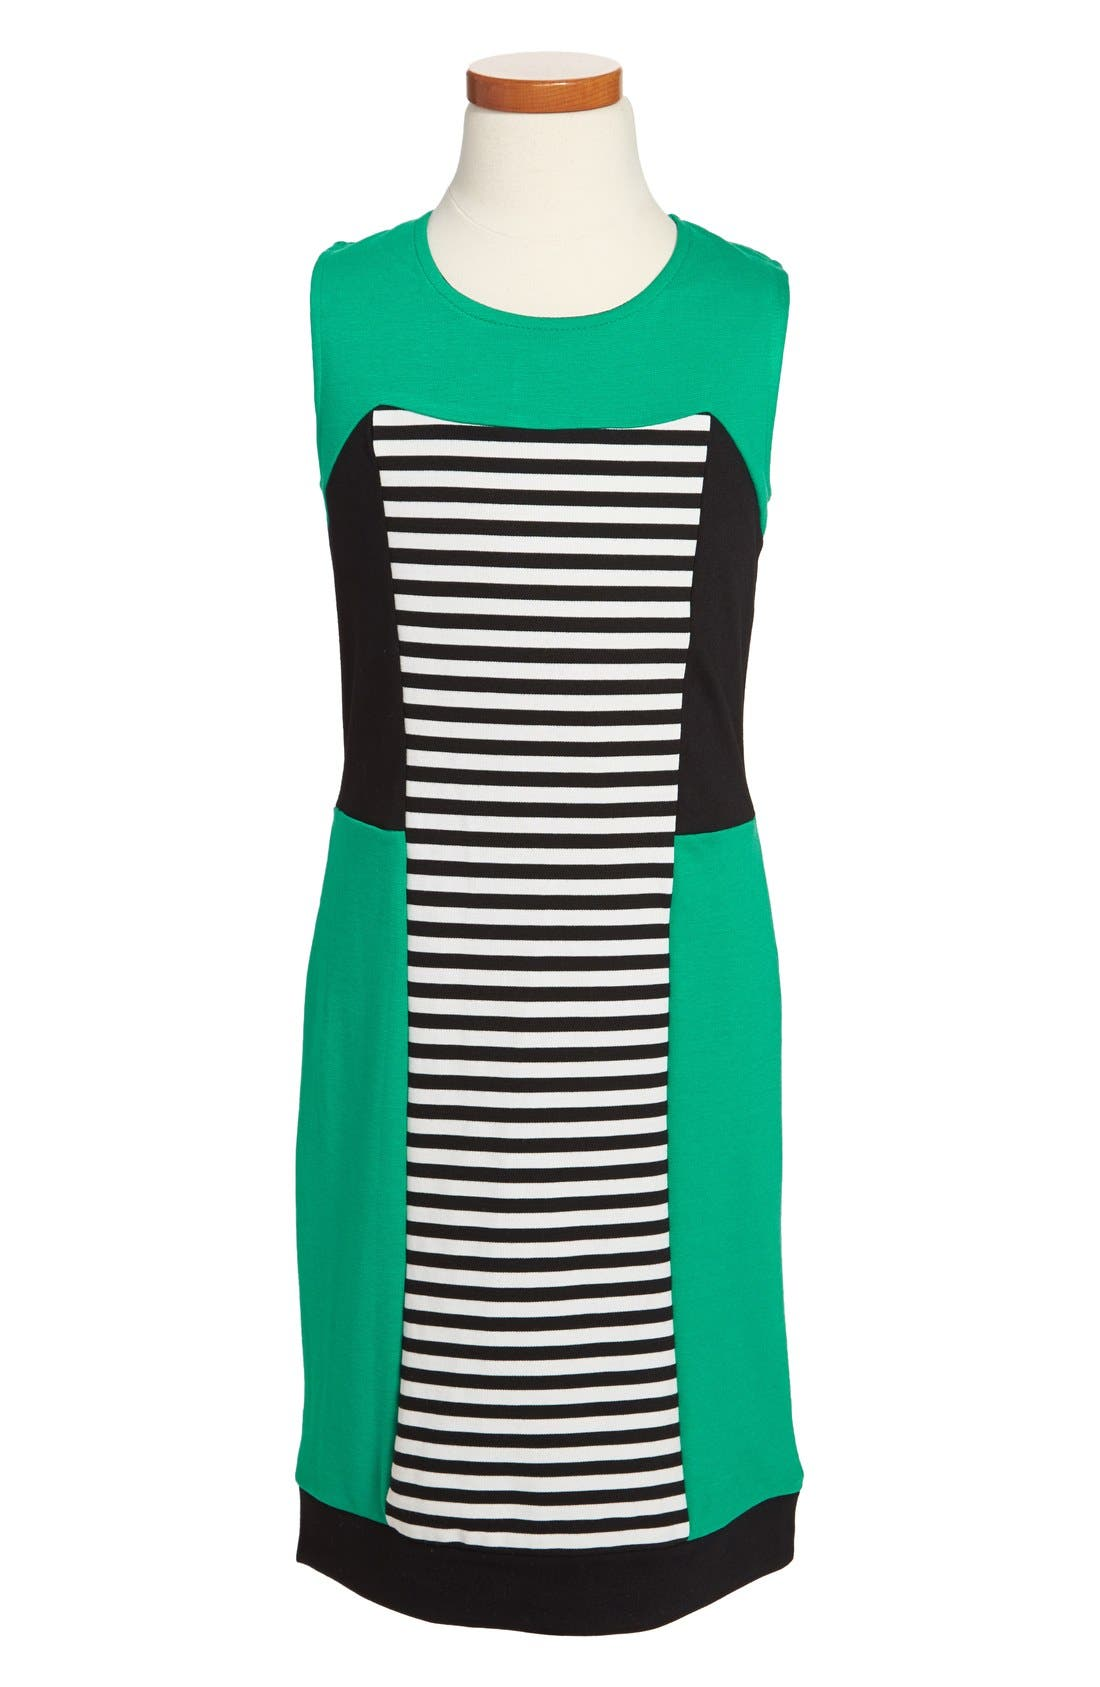 Alternate Image 1 Selected - Nicole Miller Stripe Colorblock Dress (Big Girls)